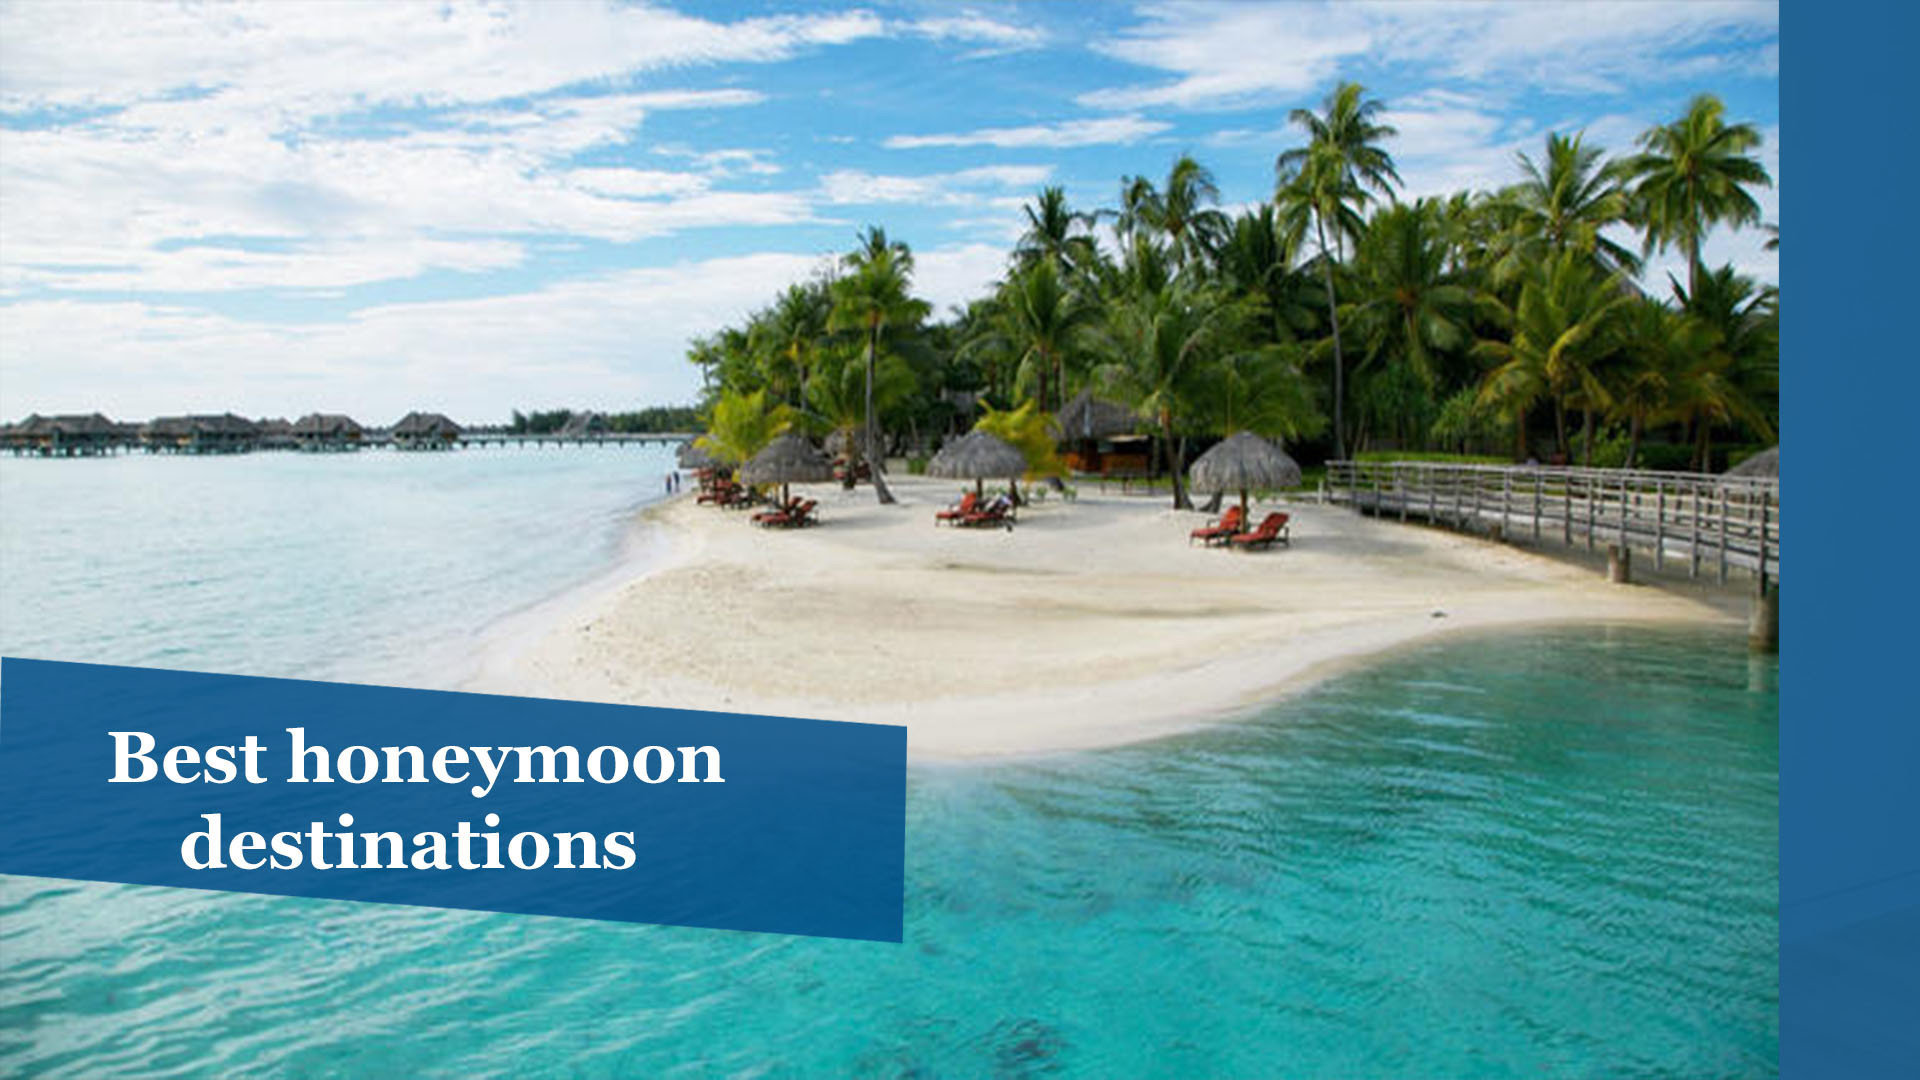 26 best honeymoon destinations chicago tribune